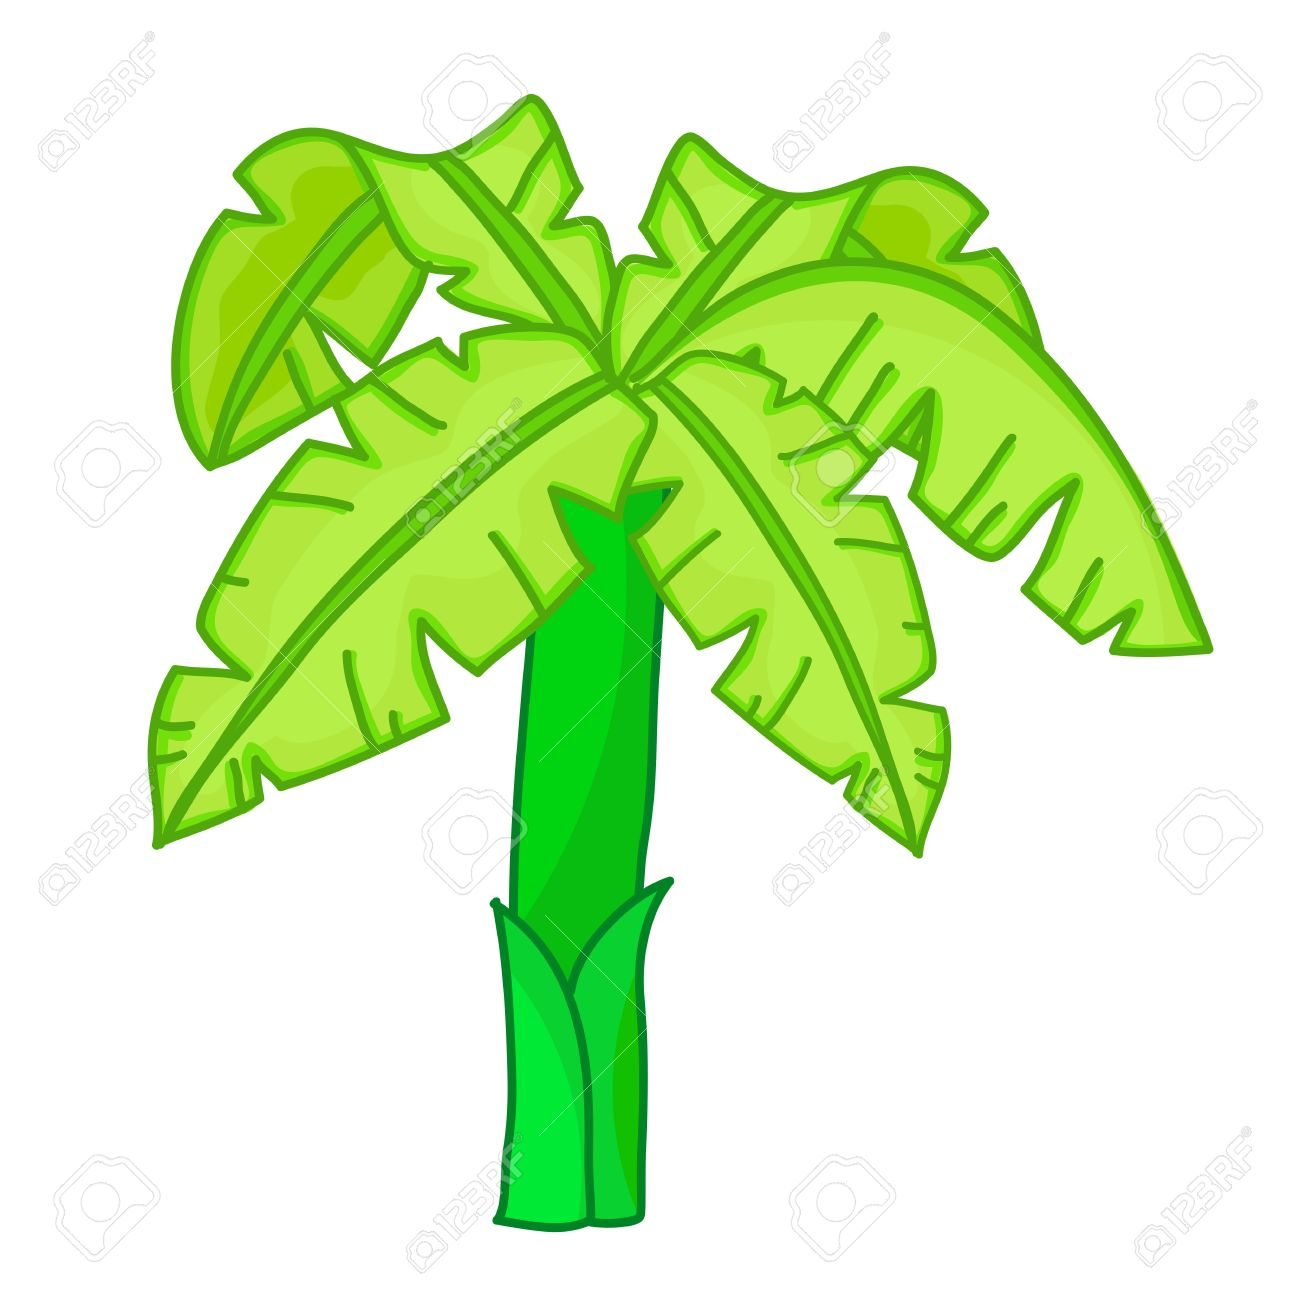 Banana Tree Isolated Illustration On White Background Royalty Free.